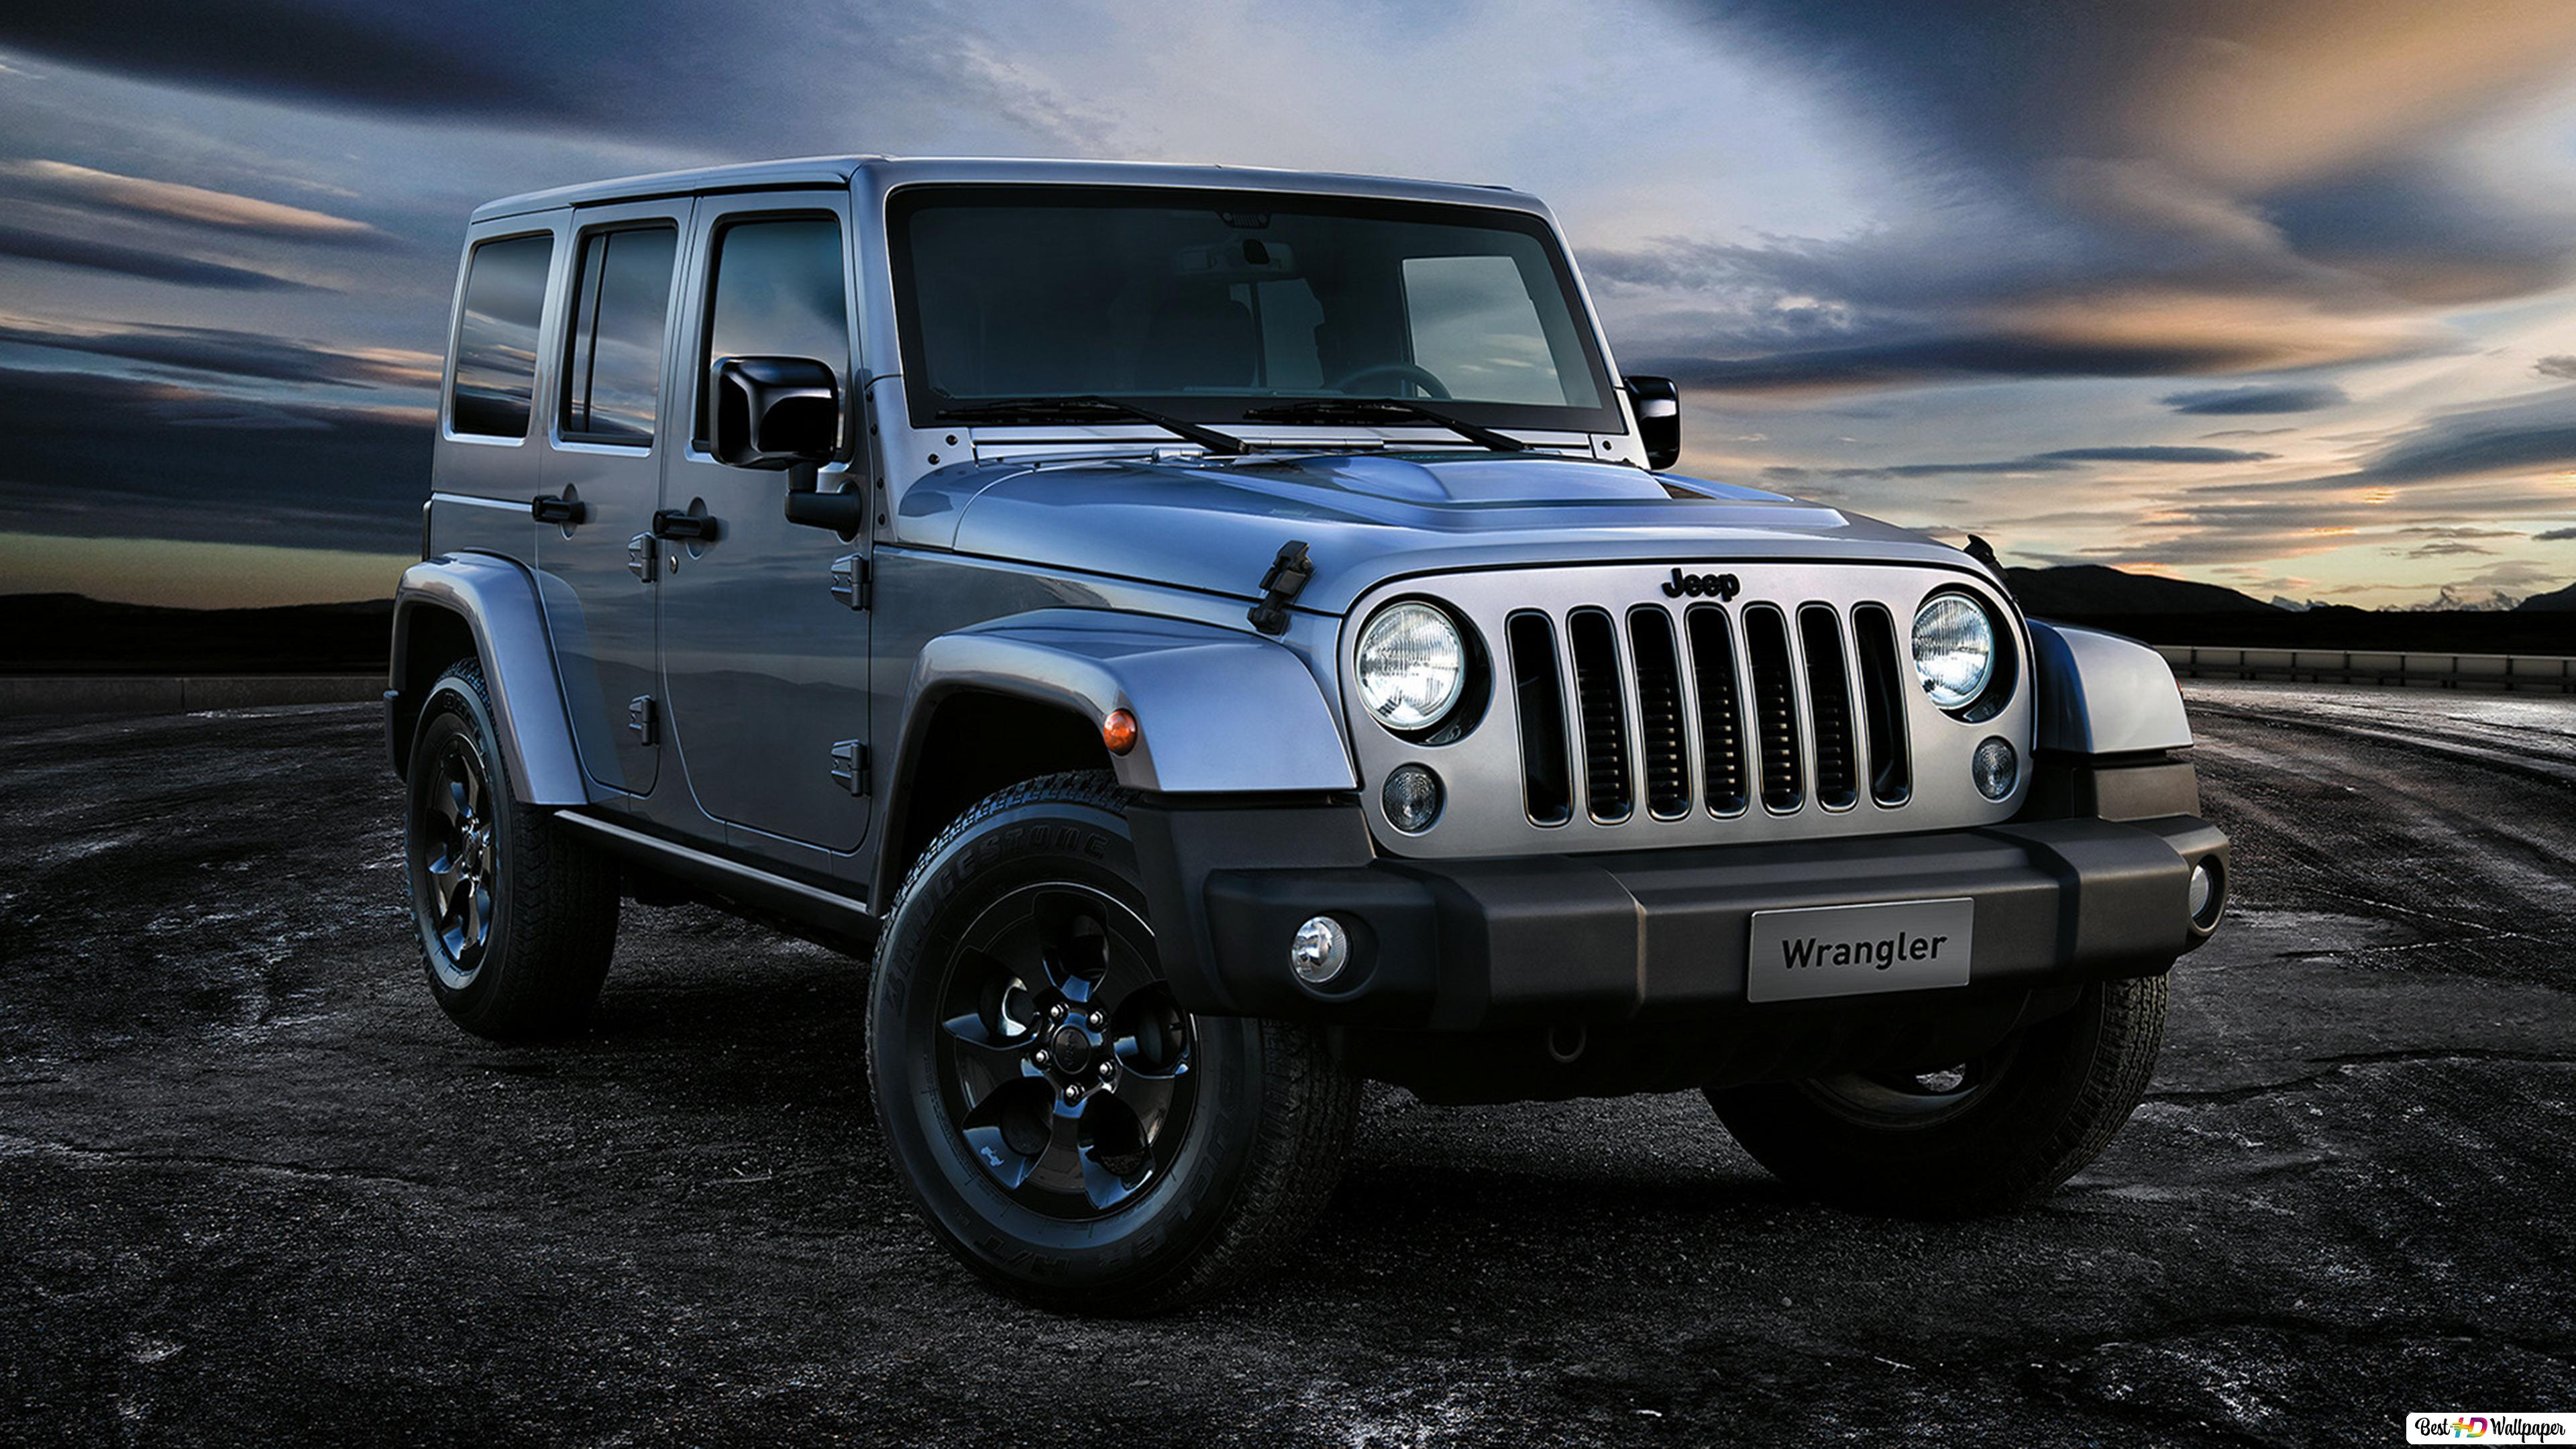 Jeep Wrangler HD wallpaper download